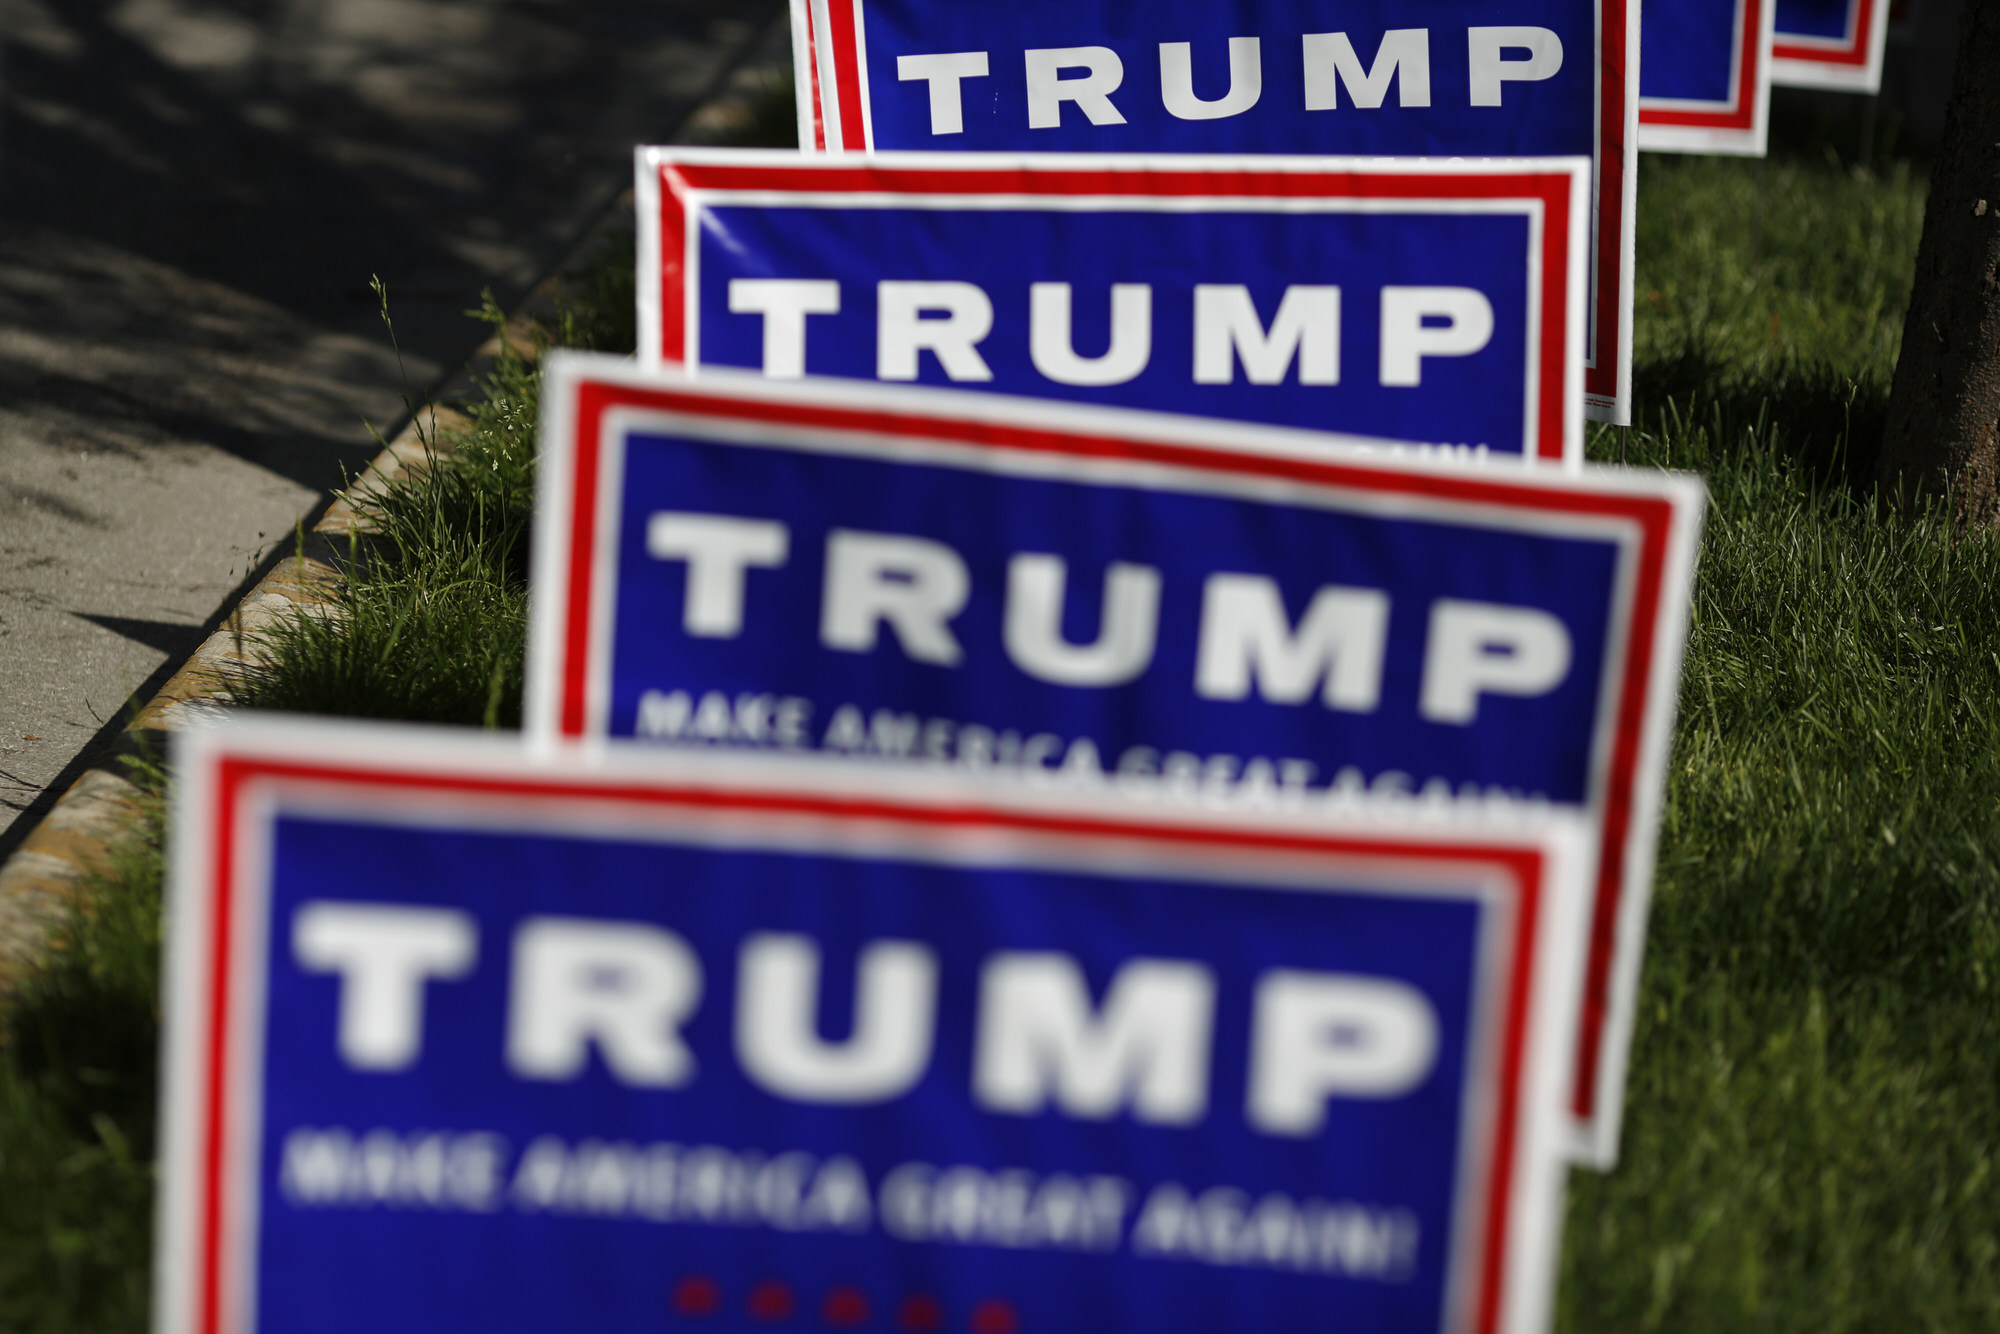 "Signs are displayed outside a campaign event for Donald Trump, president and chief executive of Trump Organization Inc. and 2016 Republican presidential candidate, in Evansville, Indiana, U.S., on Thursday, April 28, 2016. Trump said he's campaigning hard to win Tuesday's presidential primary in Indiana and that if he prevails, his party's nomination contest will be ""over."" Photographer: Luke Sharrett/Bloomberg"